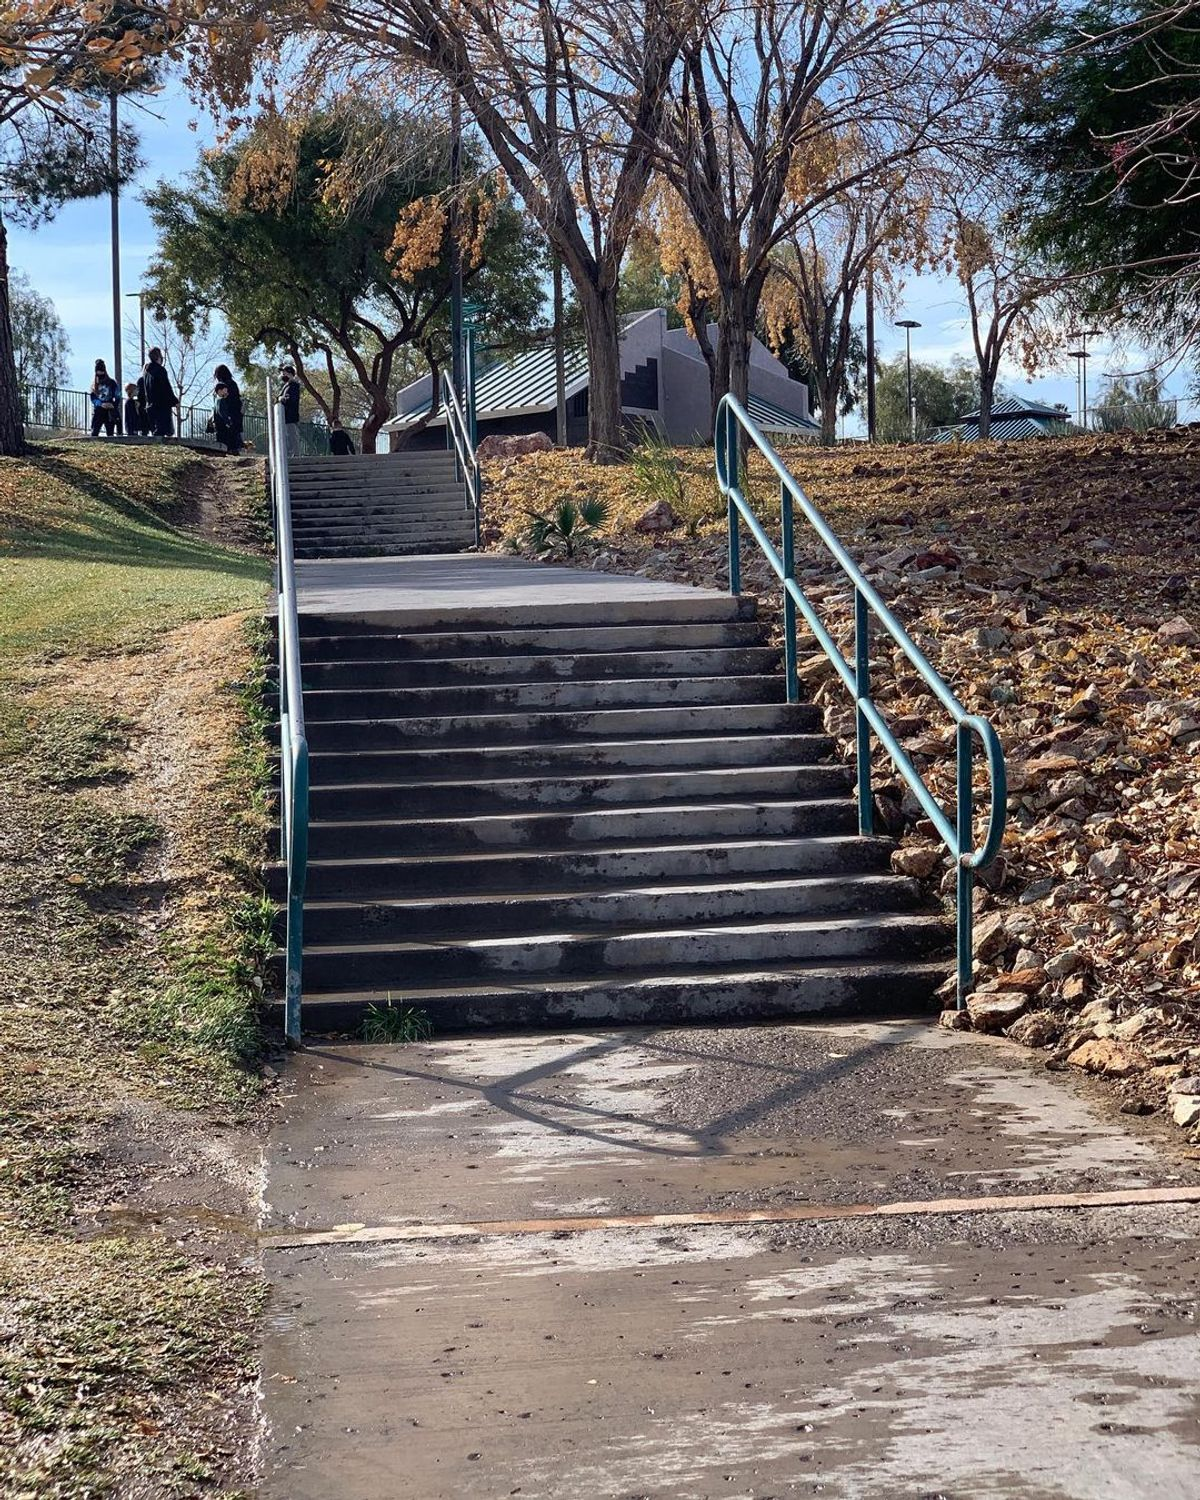 Image for skate spot Arroyo 11 Then 12